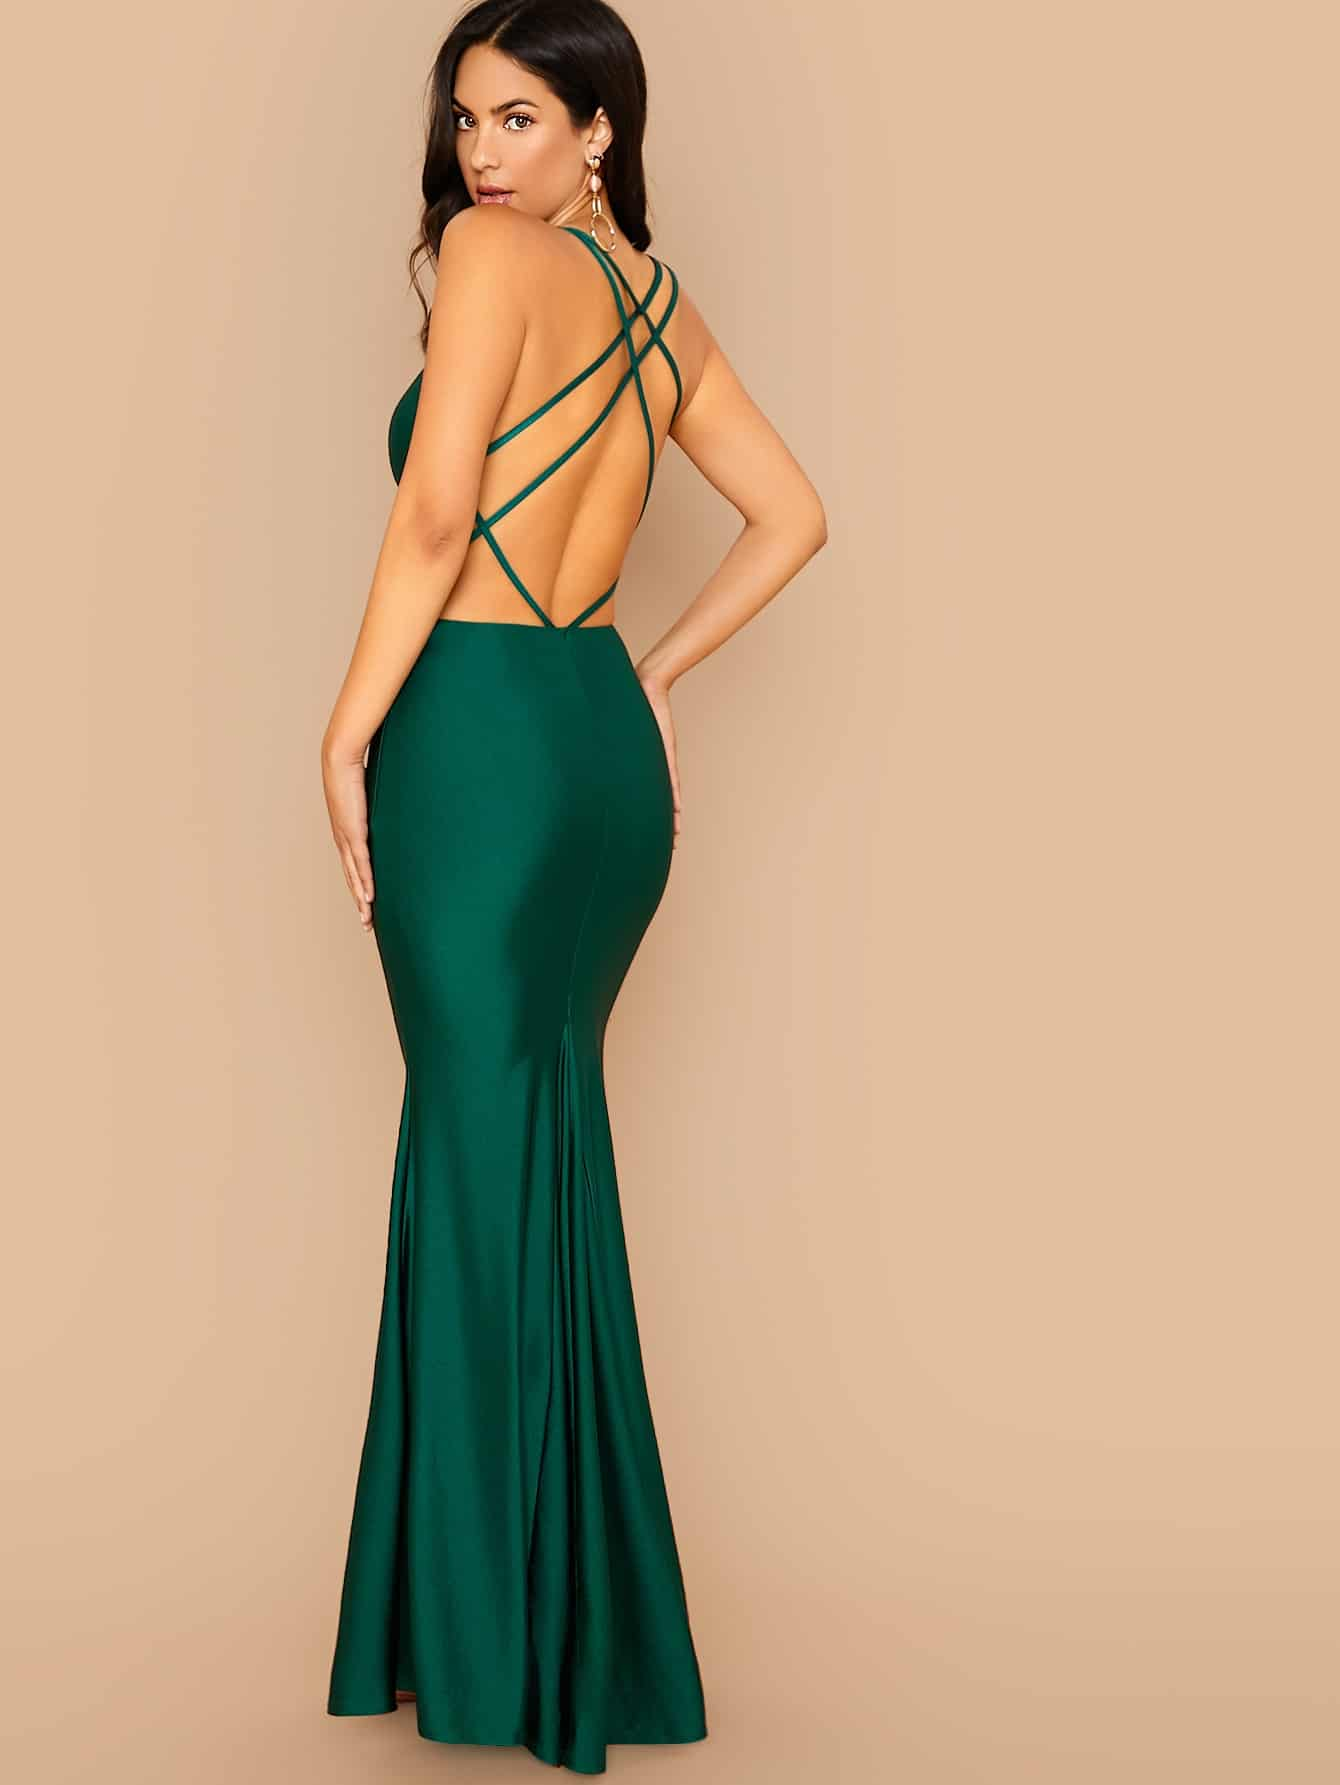 Plunge Neck Crisscross Open Back Fishtail Hem Dress-dress-Trendy-JayBoutique-XS-Trendy-JayBoutique